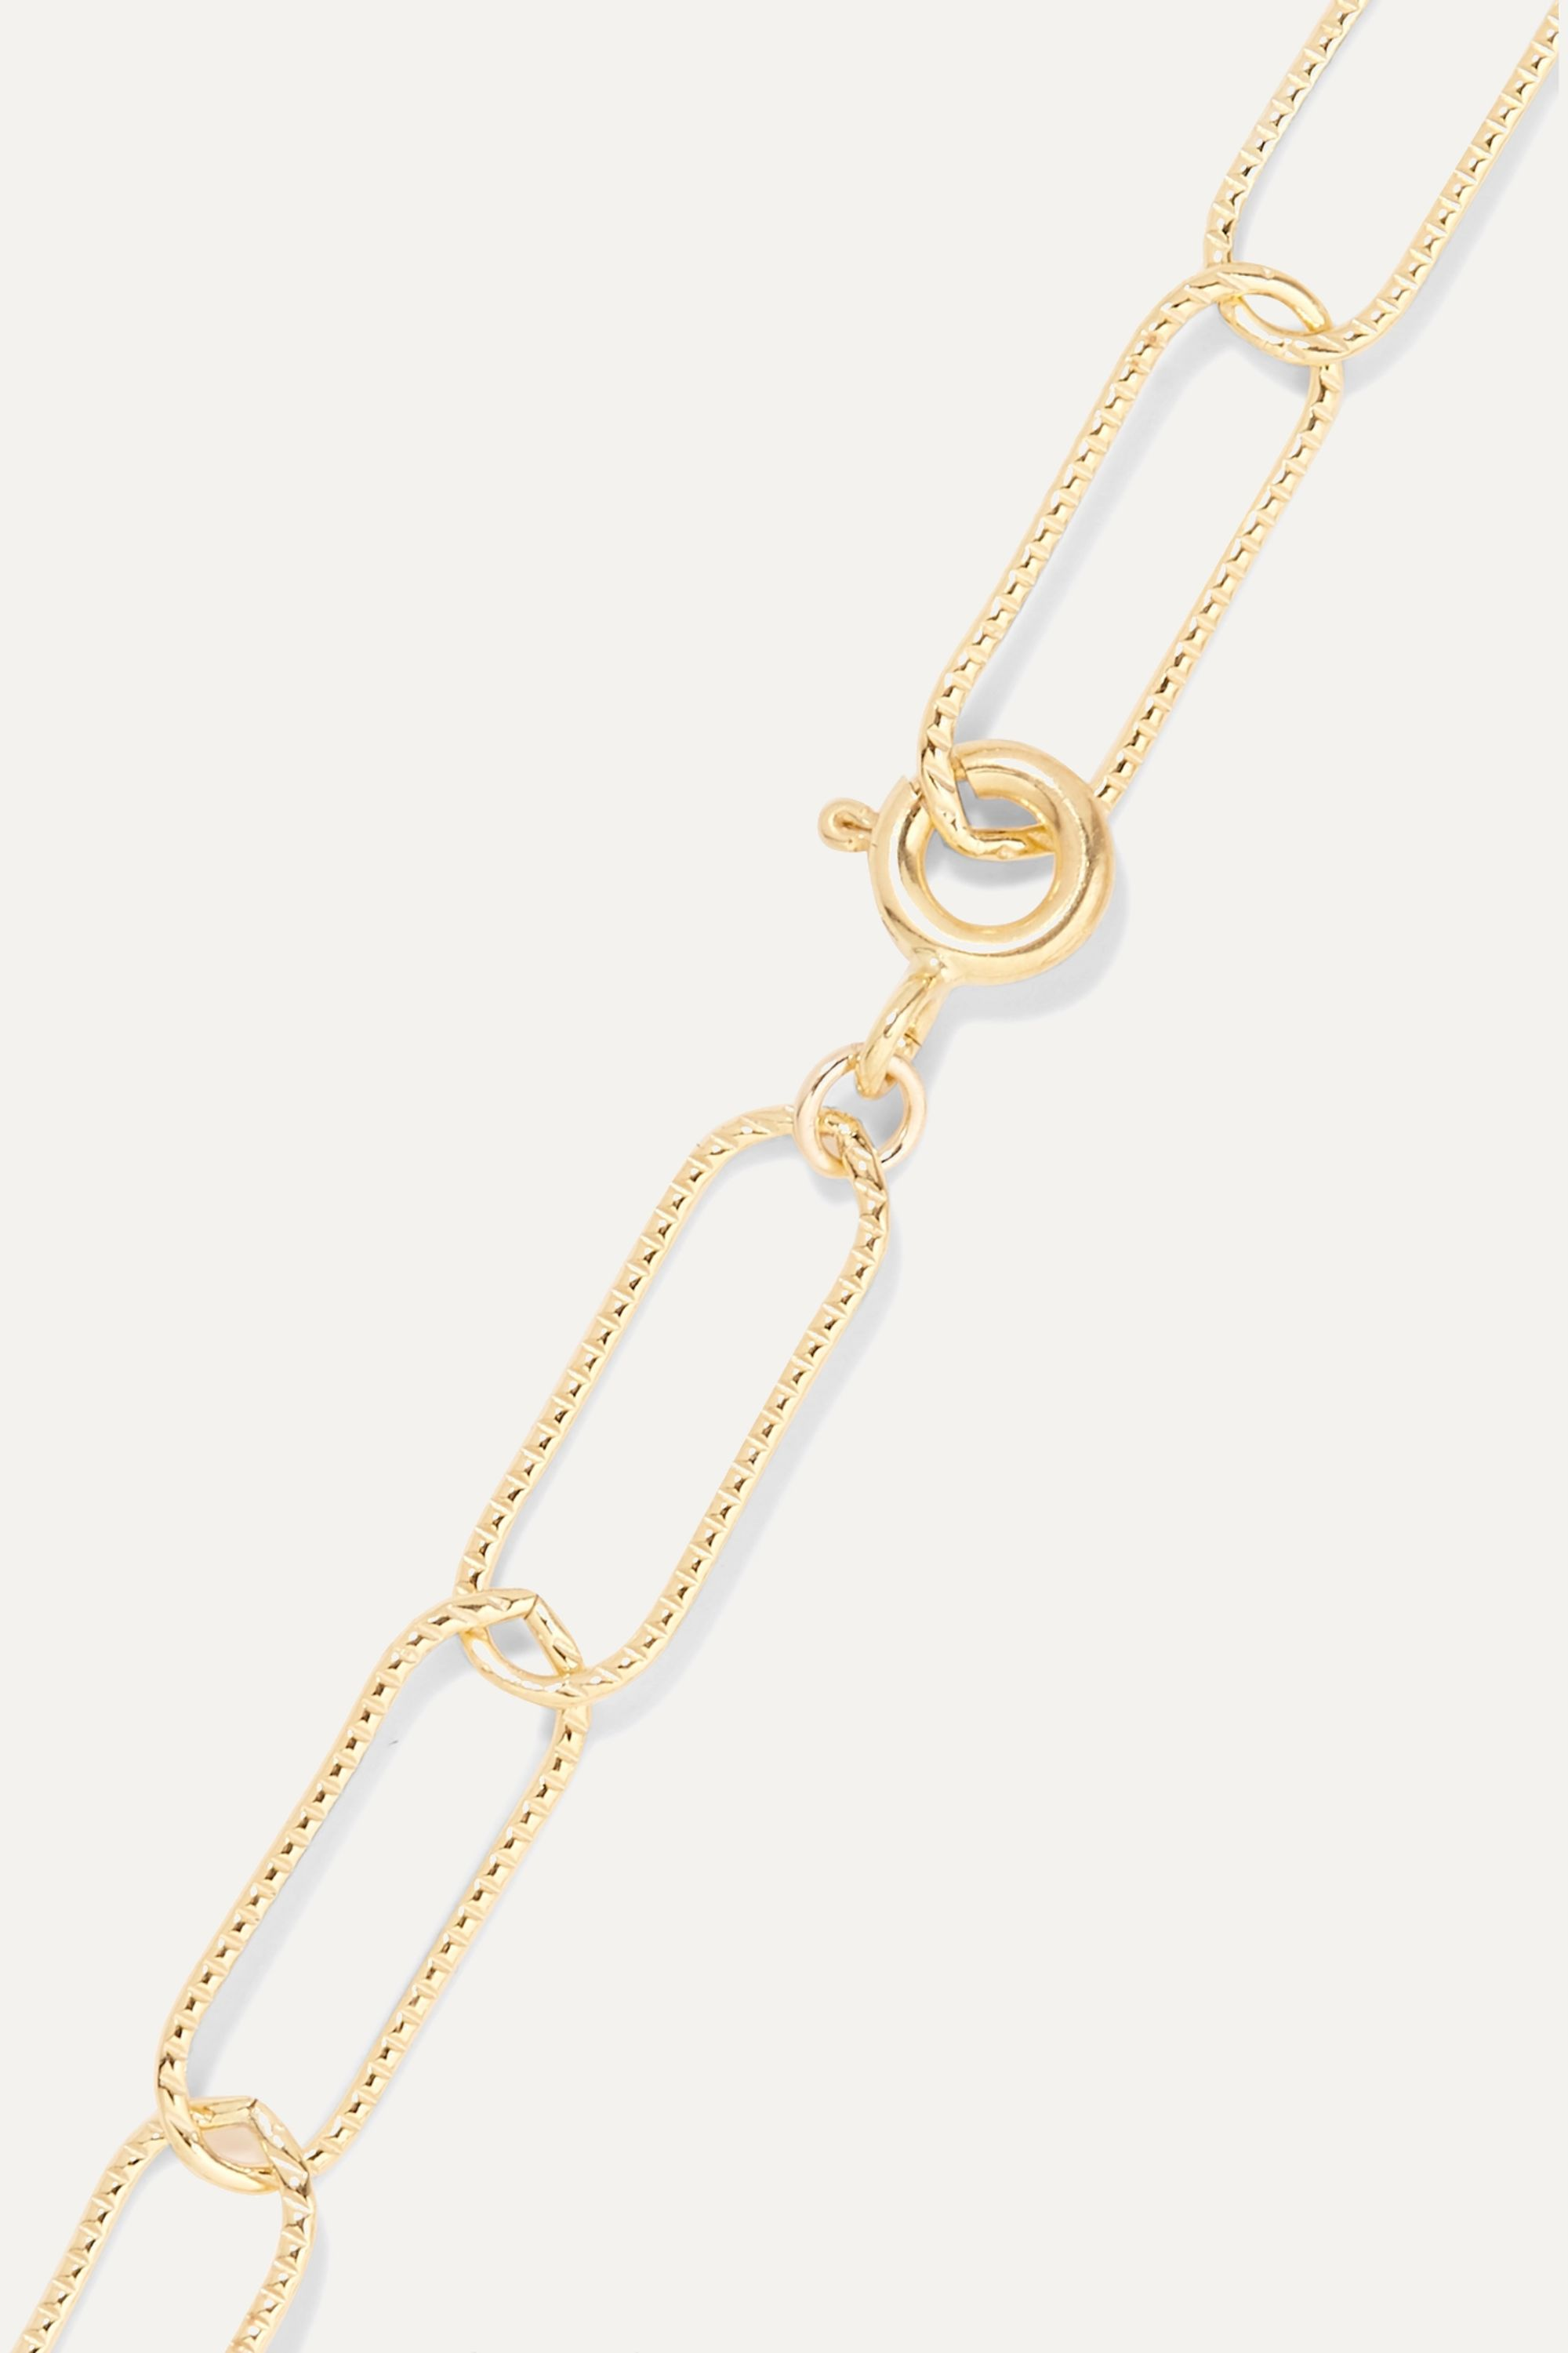 Alighieri The Talisman gold-plated pearl anklet